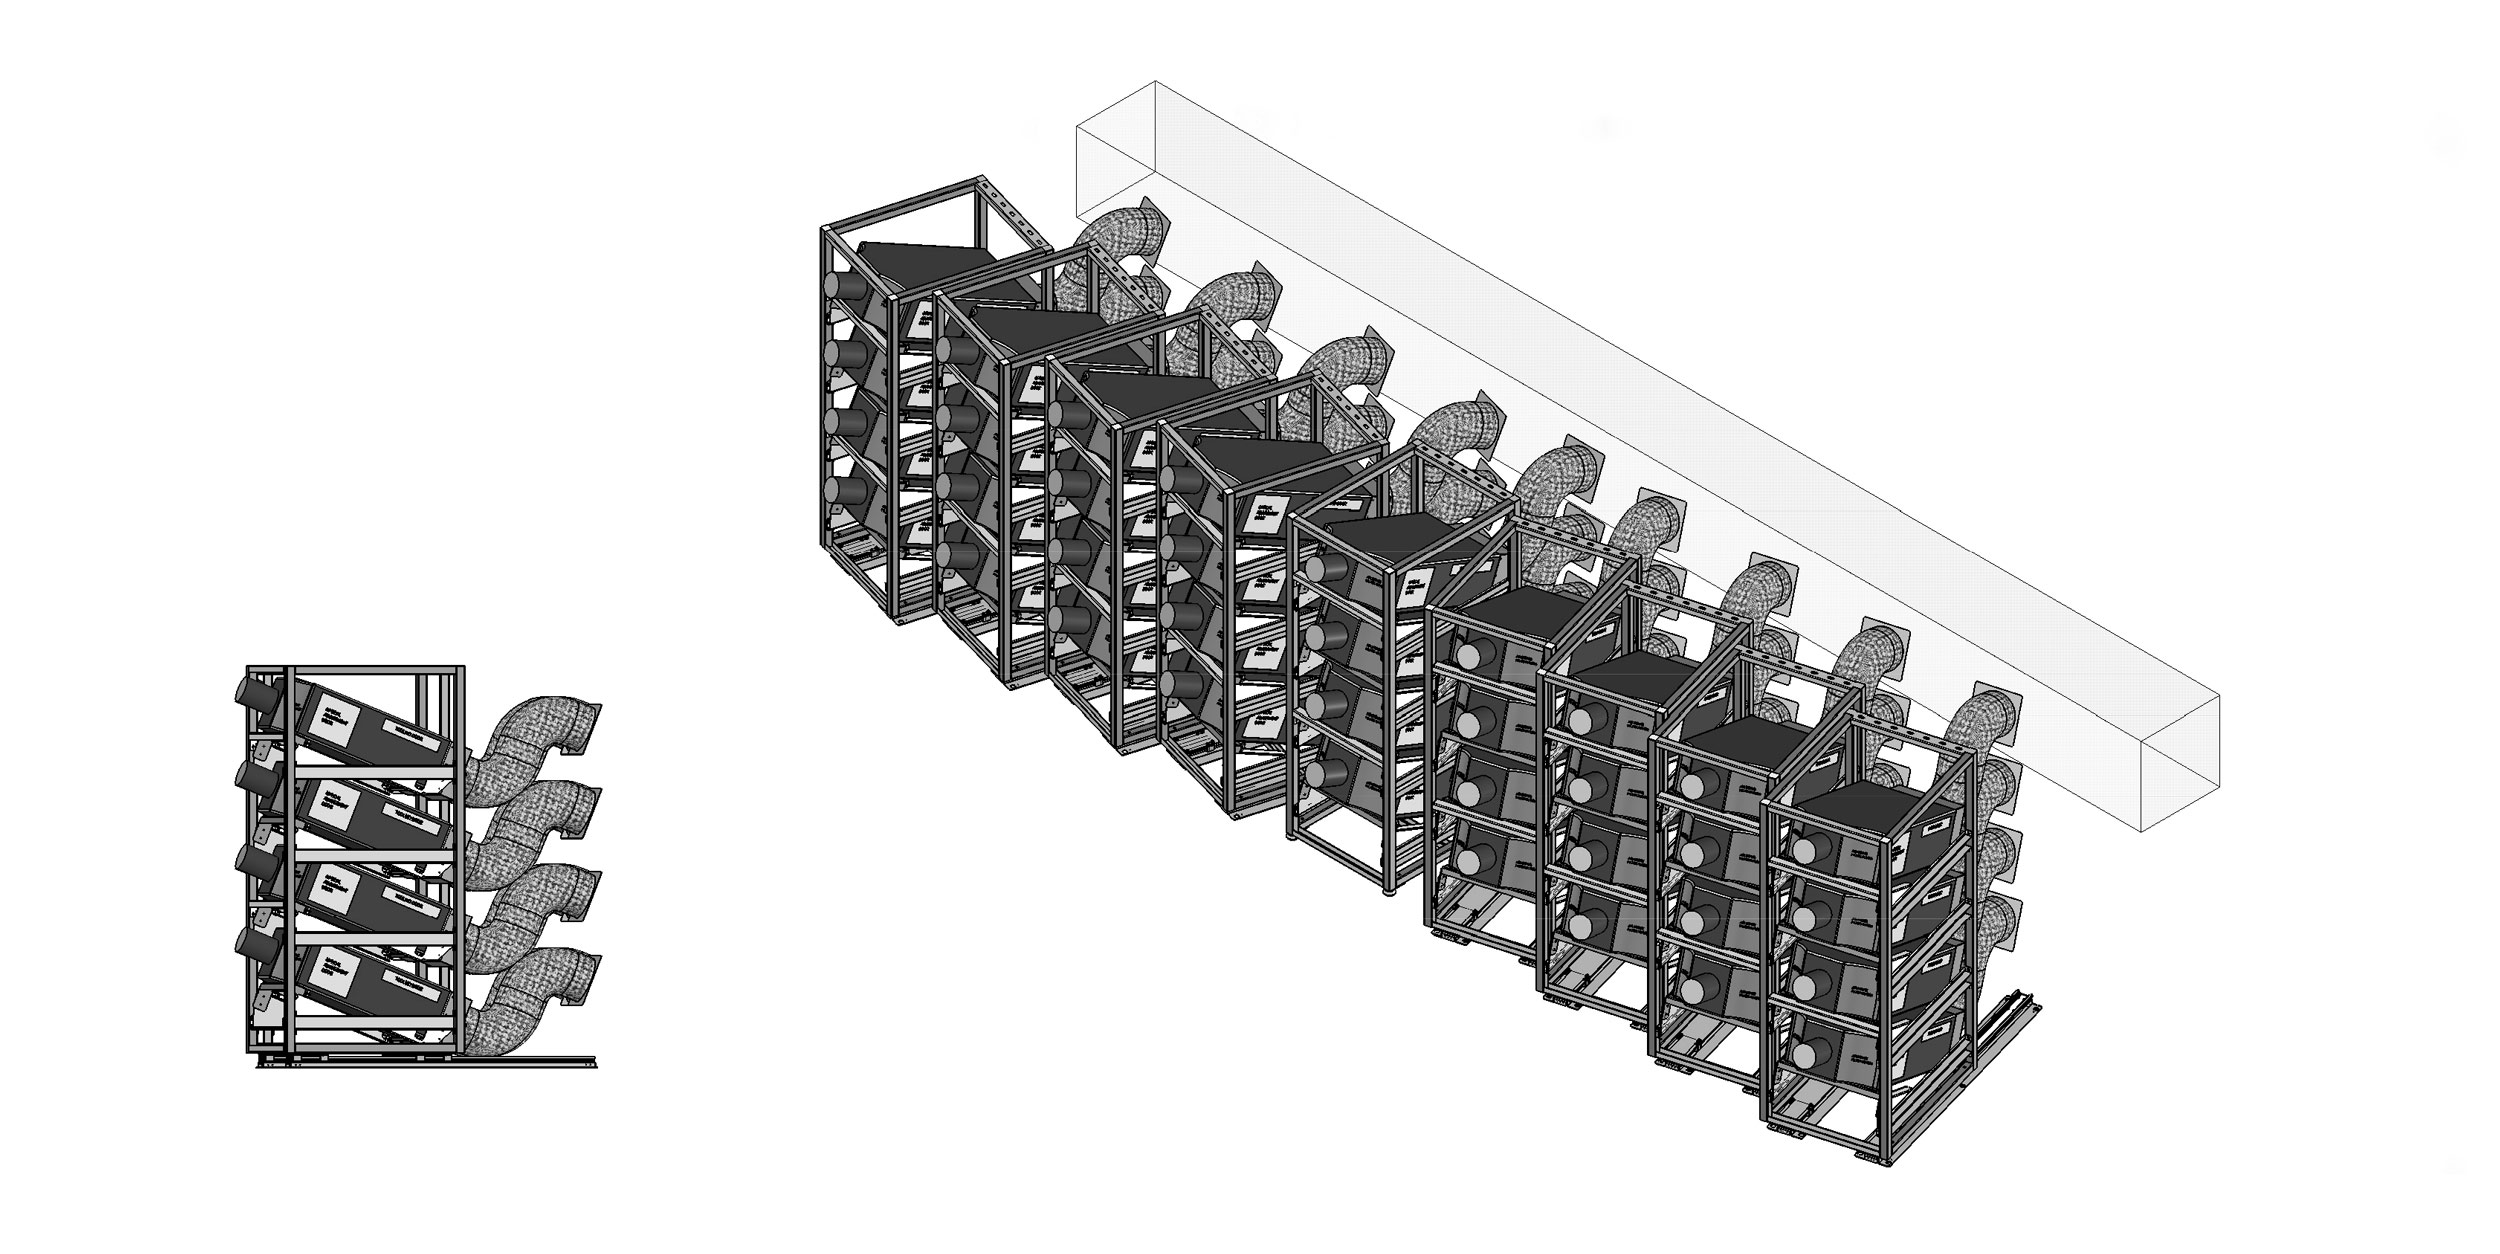 Diagram of projector racks